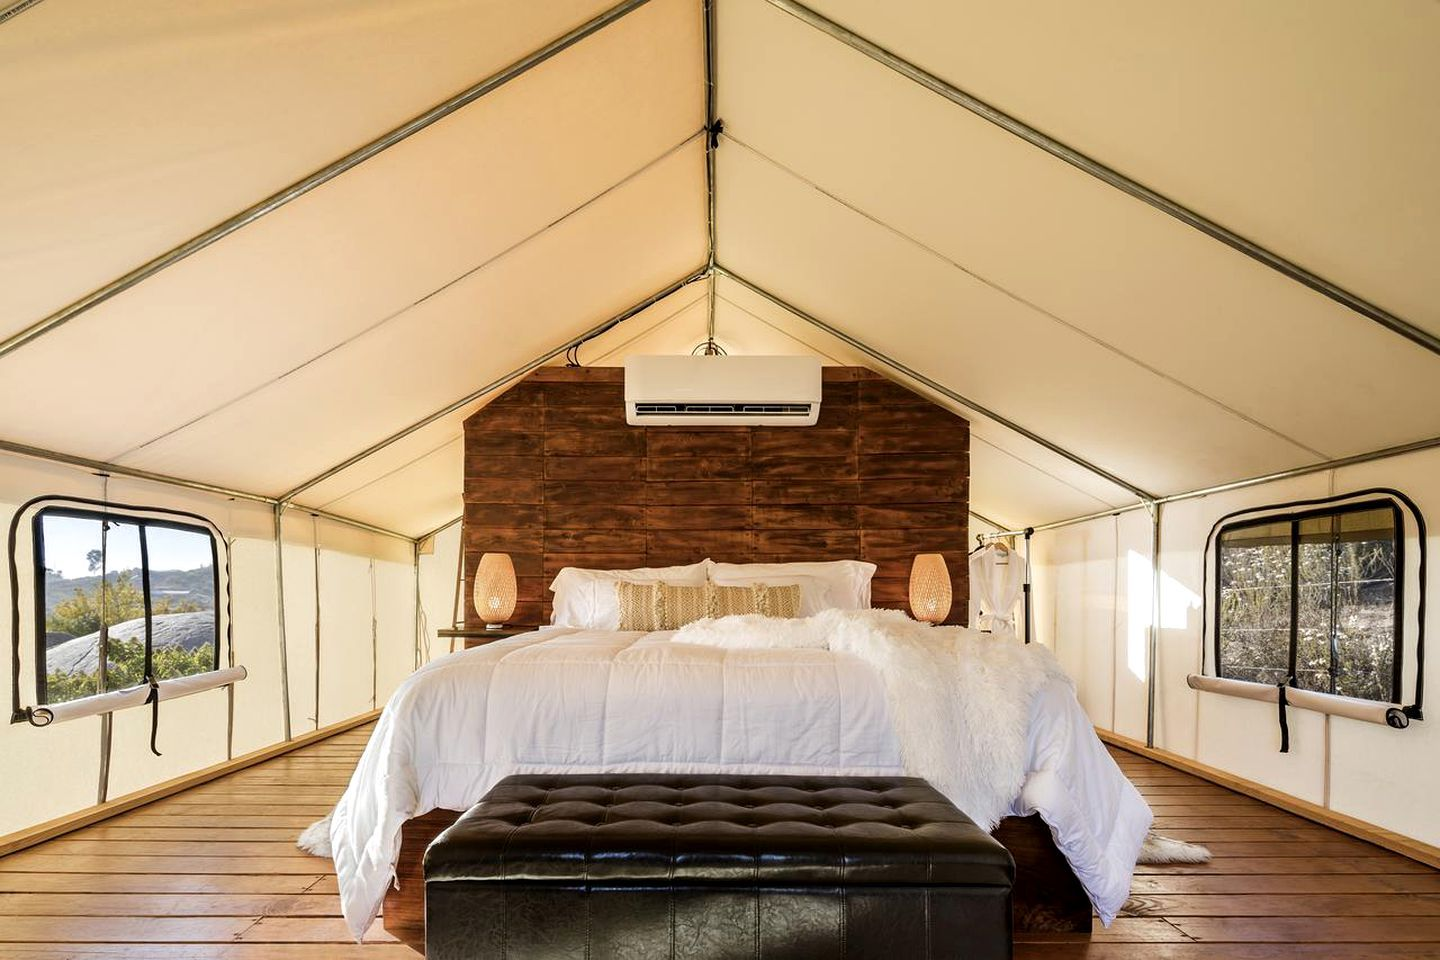 Luxury Safari Tent with Stunning Views for a Getaway near